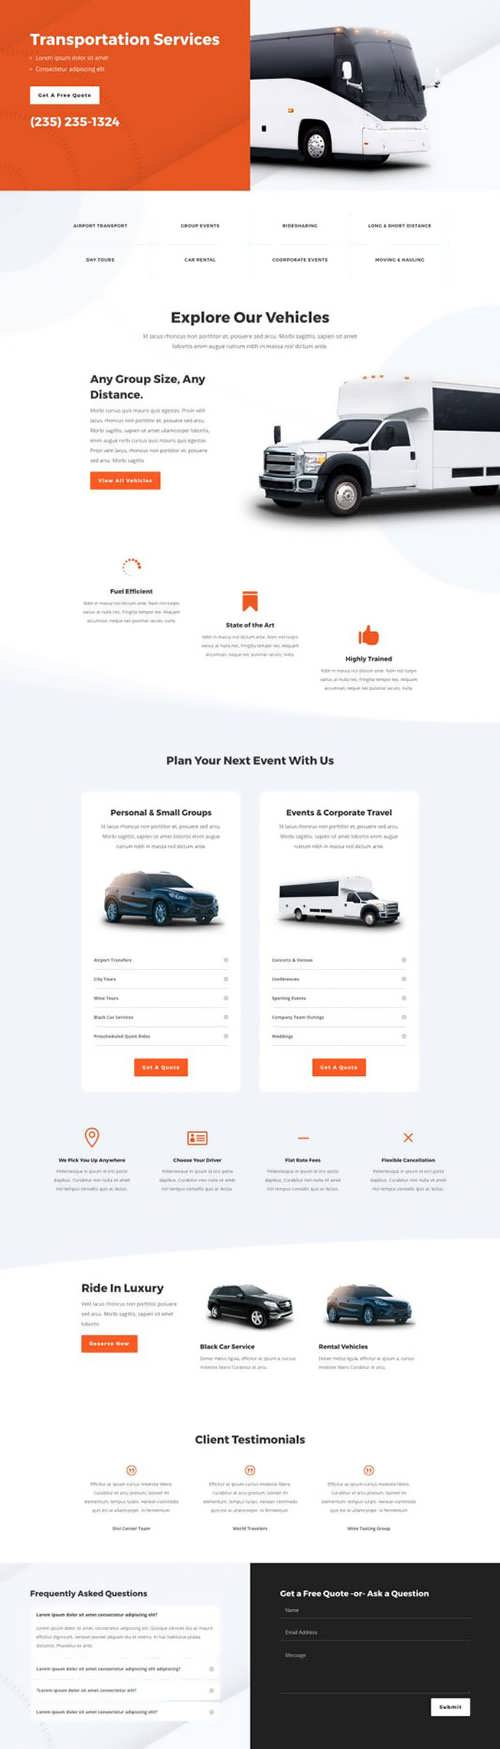 transportation services landing page